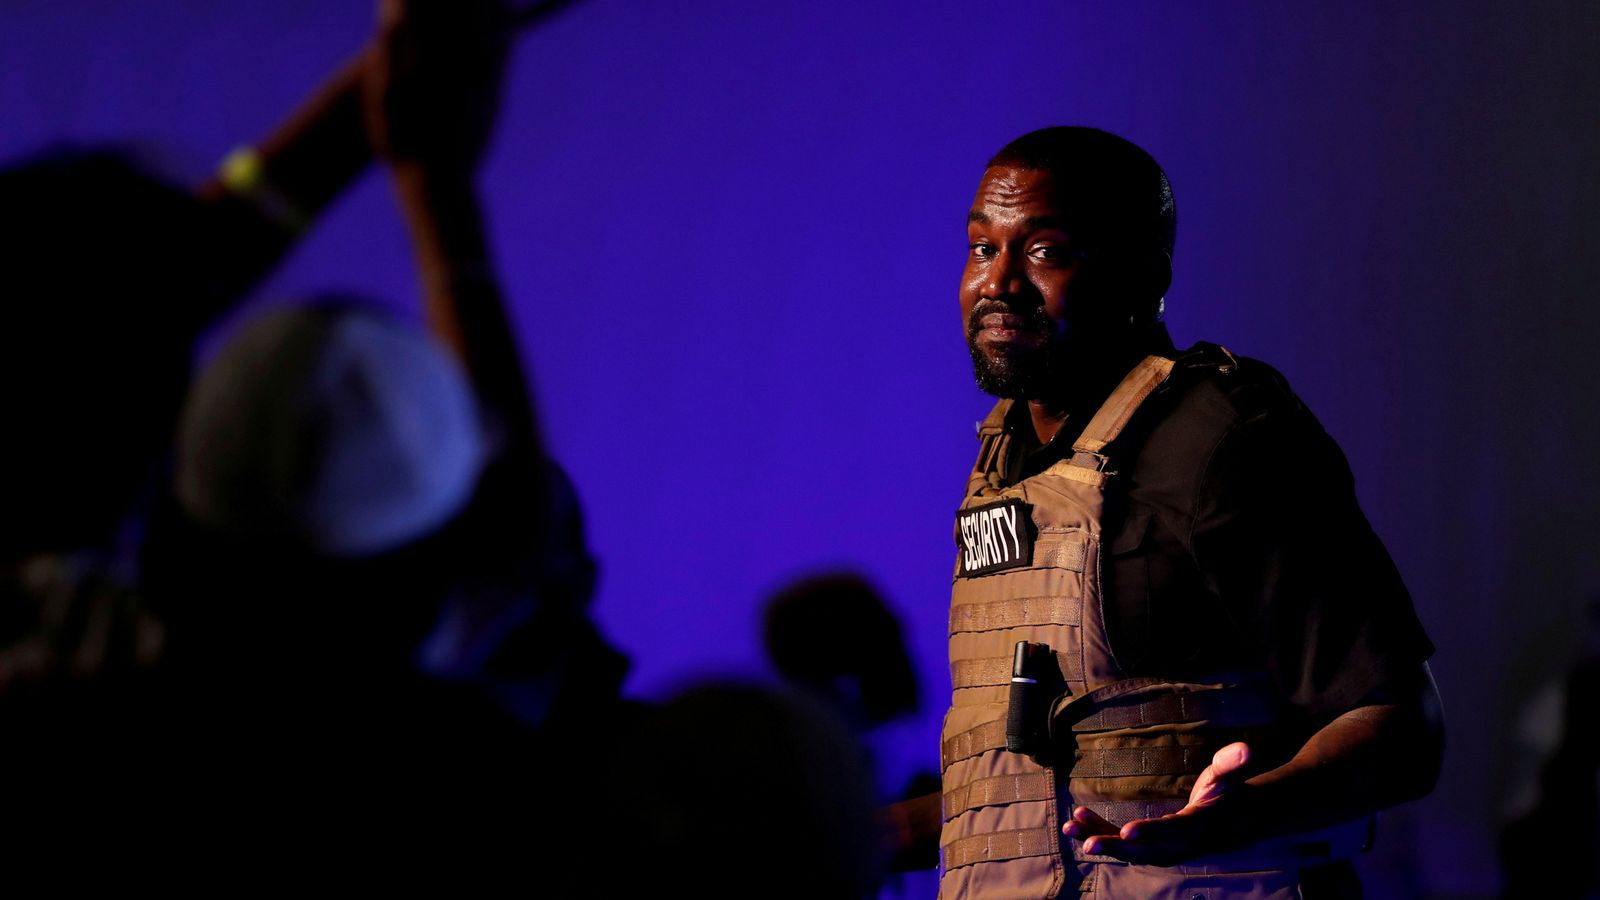 Kanye West premieres new album in Atlanta - including Jay-Z surprise feature